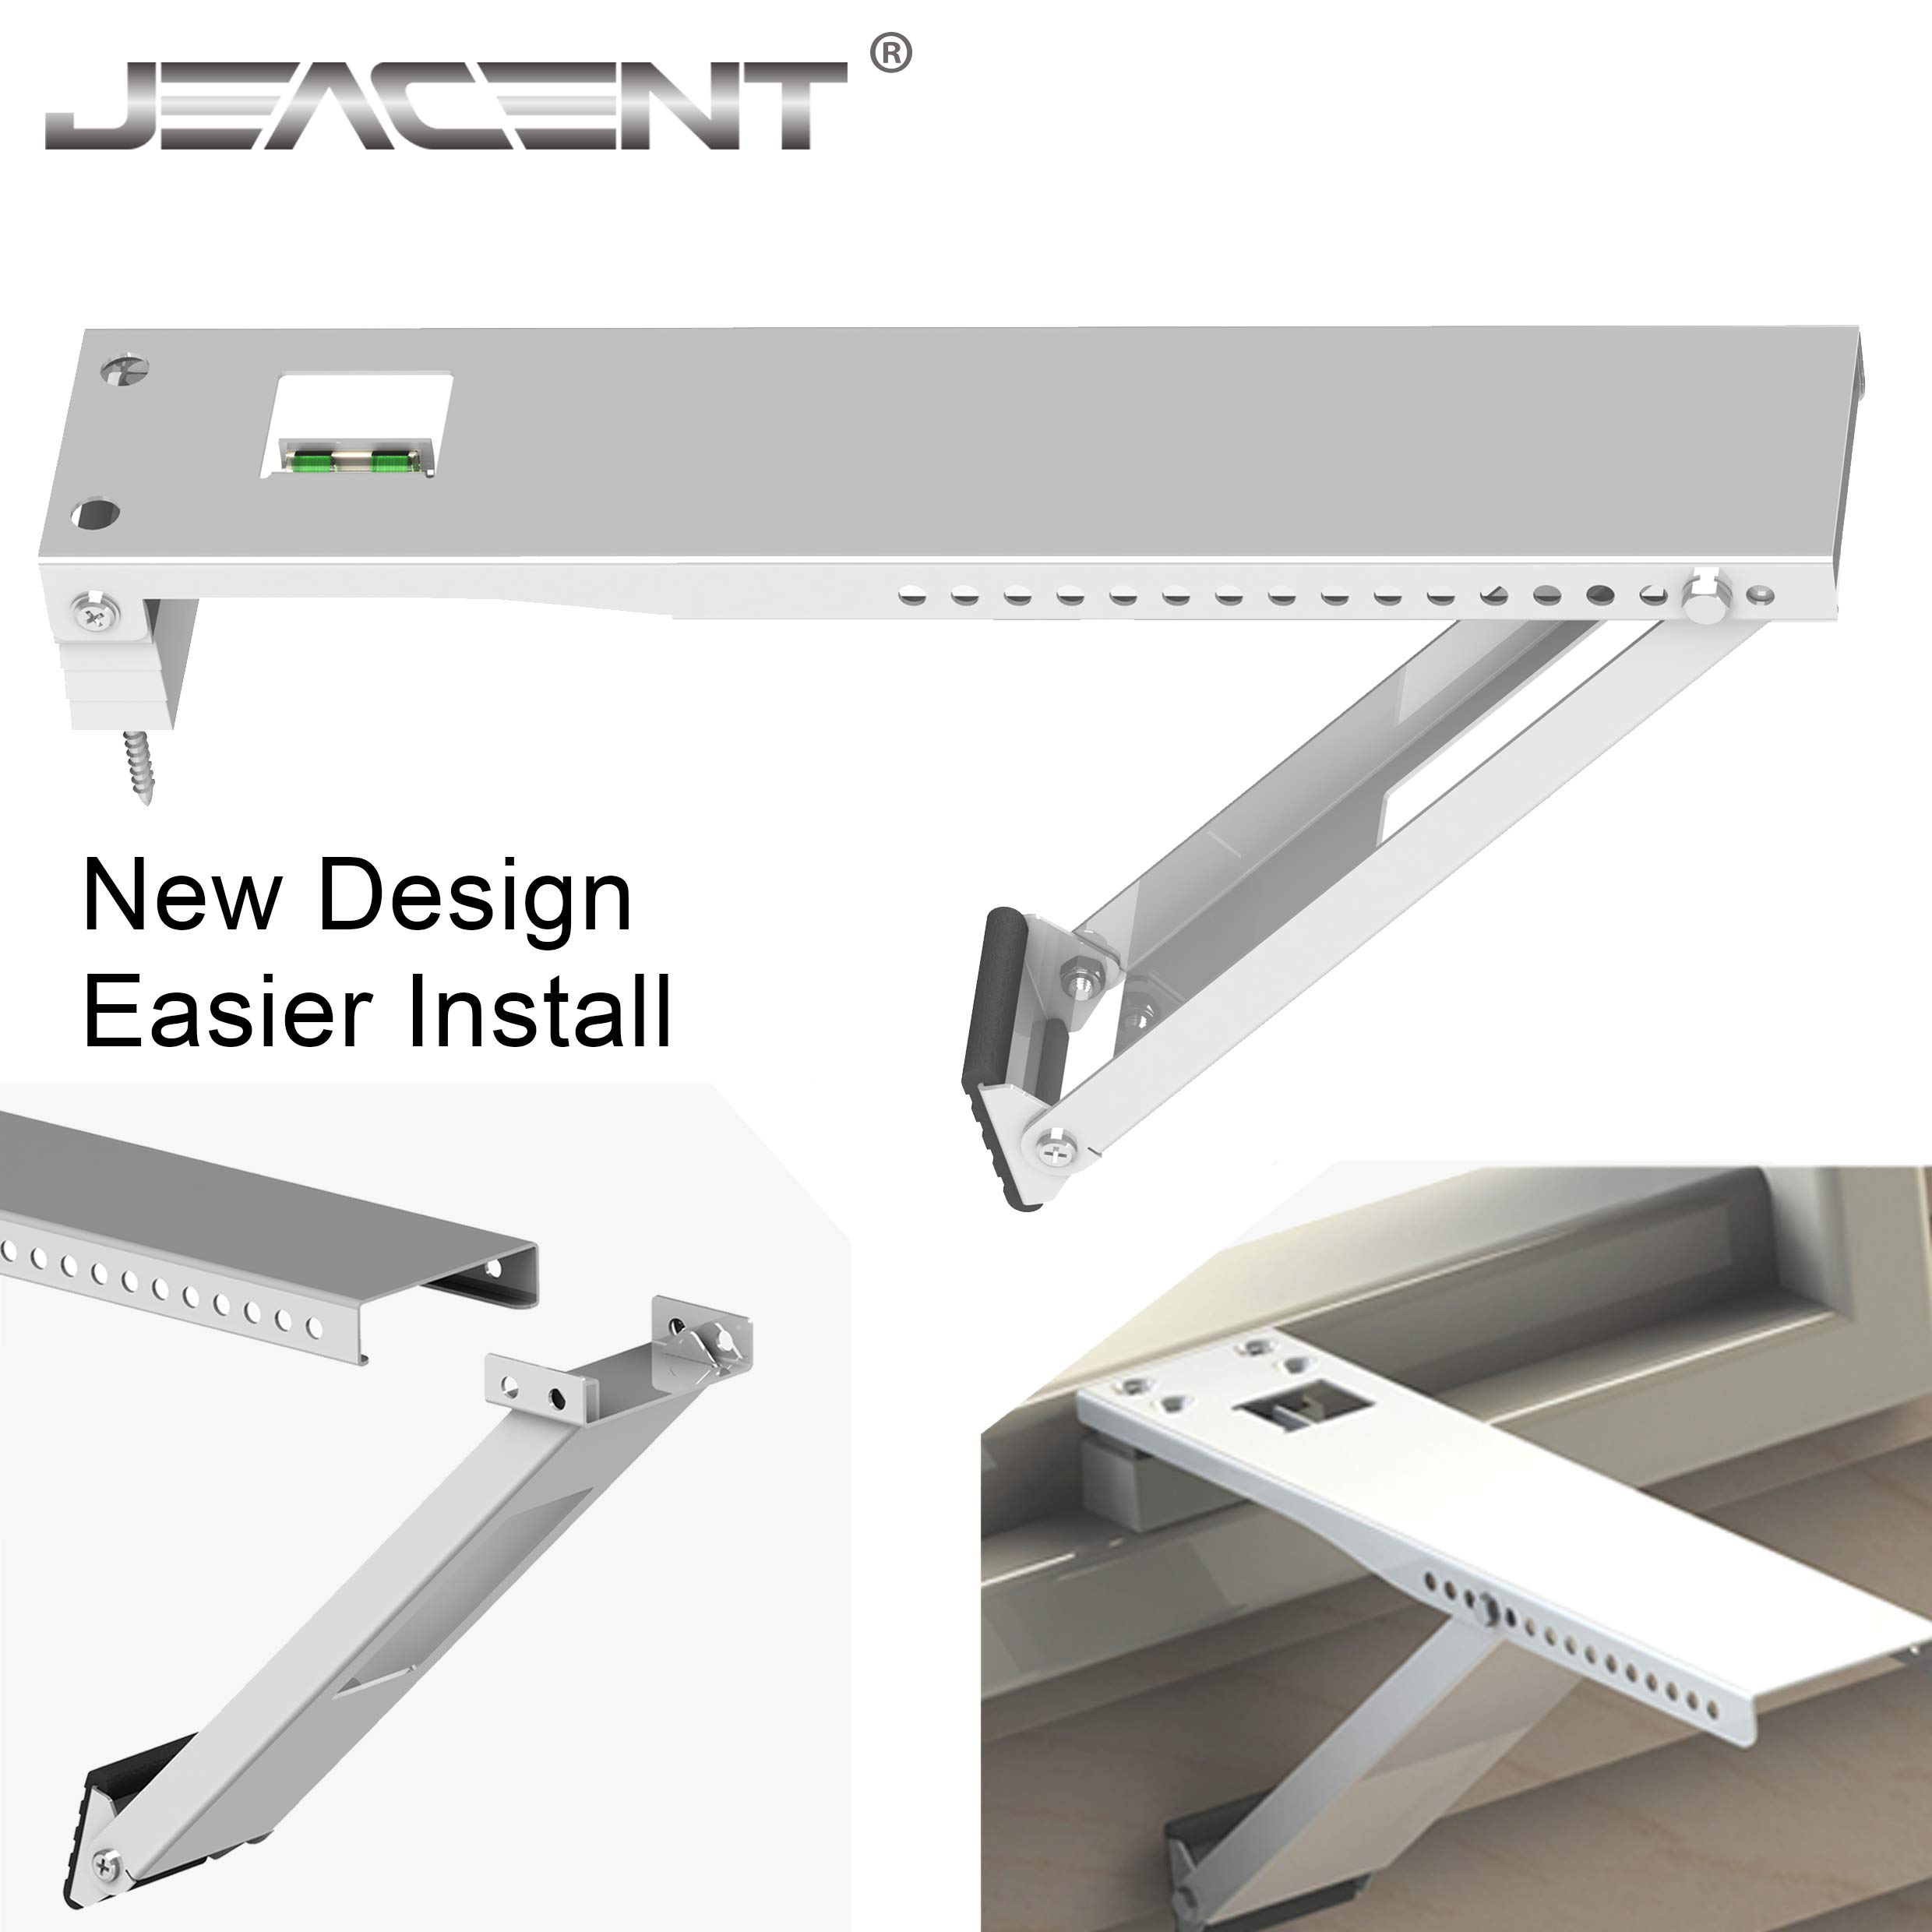 Jeacent Universal AC Window Bracket, Air Conditioner Support Bracket Heavy Duty, Up to 165 lbs - 17 inches Arm for Common A/C Units